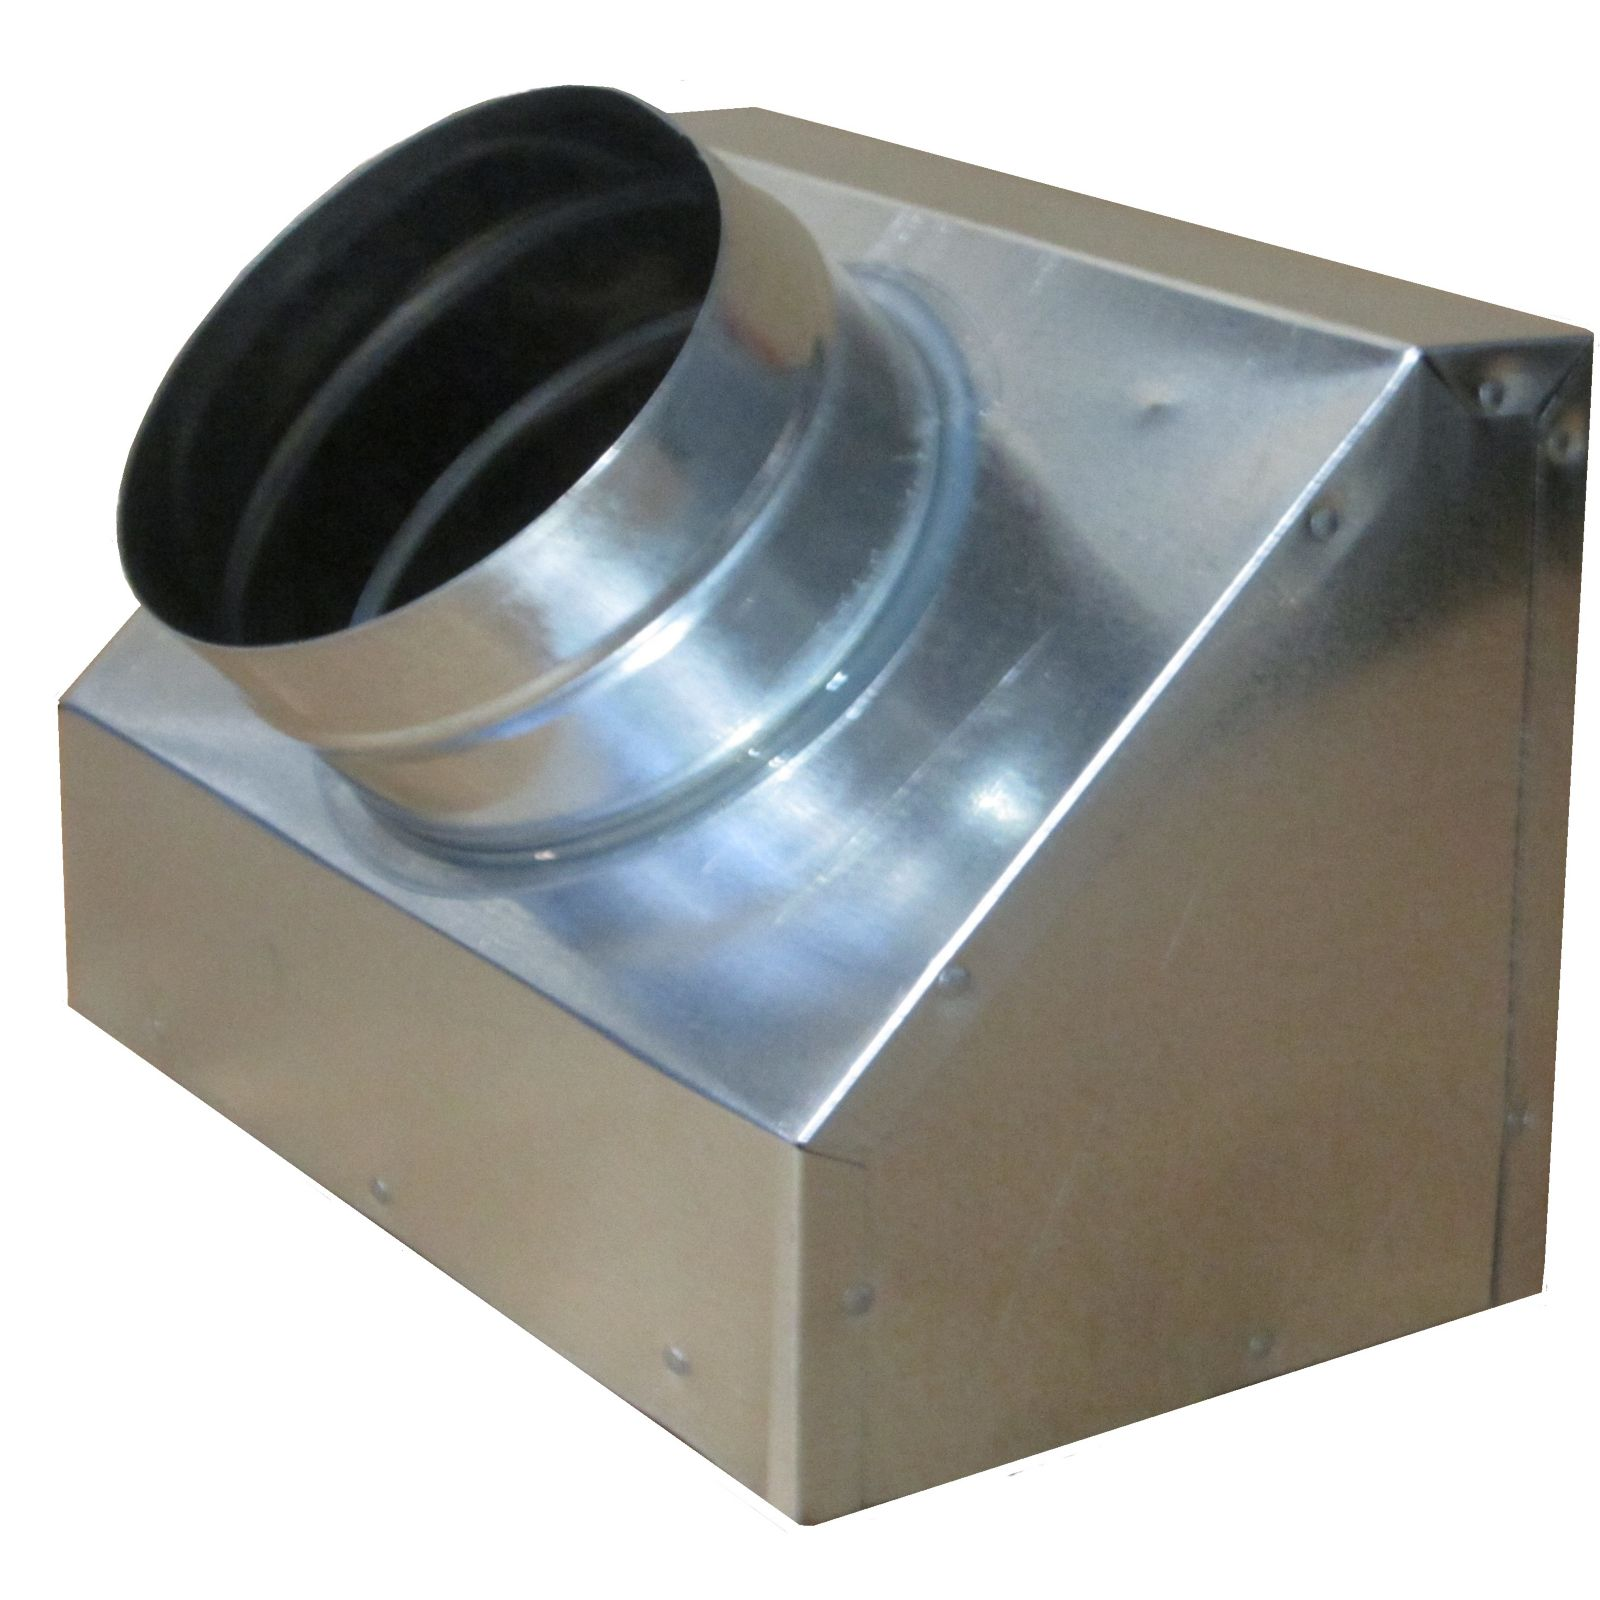 "Snap-Rite 10X06X053685FS - Insulated 45a° Slant Register Box, With Flange, 8 1/2"" Deep, 10"" x 6"" x 5"" - R6"